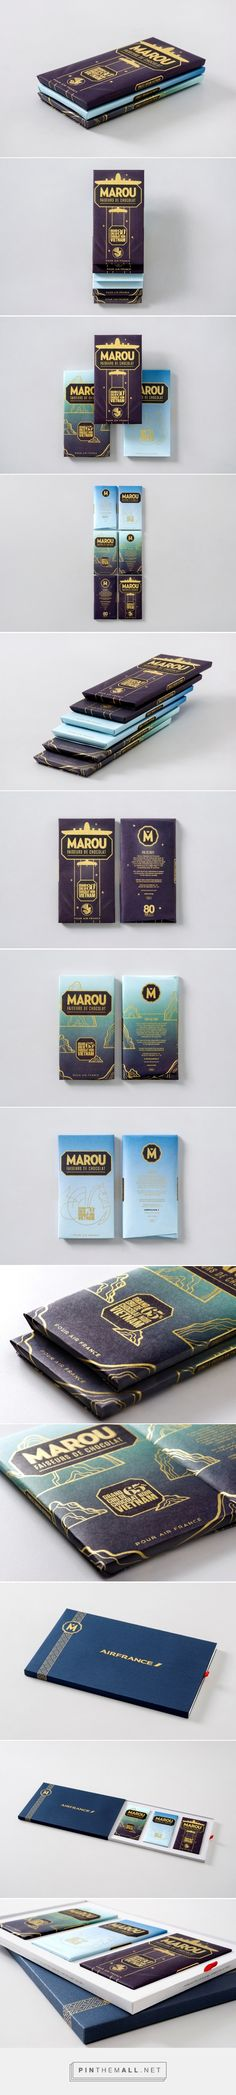 """Marou Chocolate for Air France """"Air France approached Marou Chocolate to commission a specially designed Marou chocolate bar for their annual charity gala. The theme would be celebrating the Paris to Saigon route. A connected 3 bar set which draws inspiration from the extraordinary graphic history of Air France, the wonders of Vietnam, and that silky smooth ride in the sky at 30,000 ft."""""""